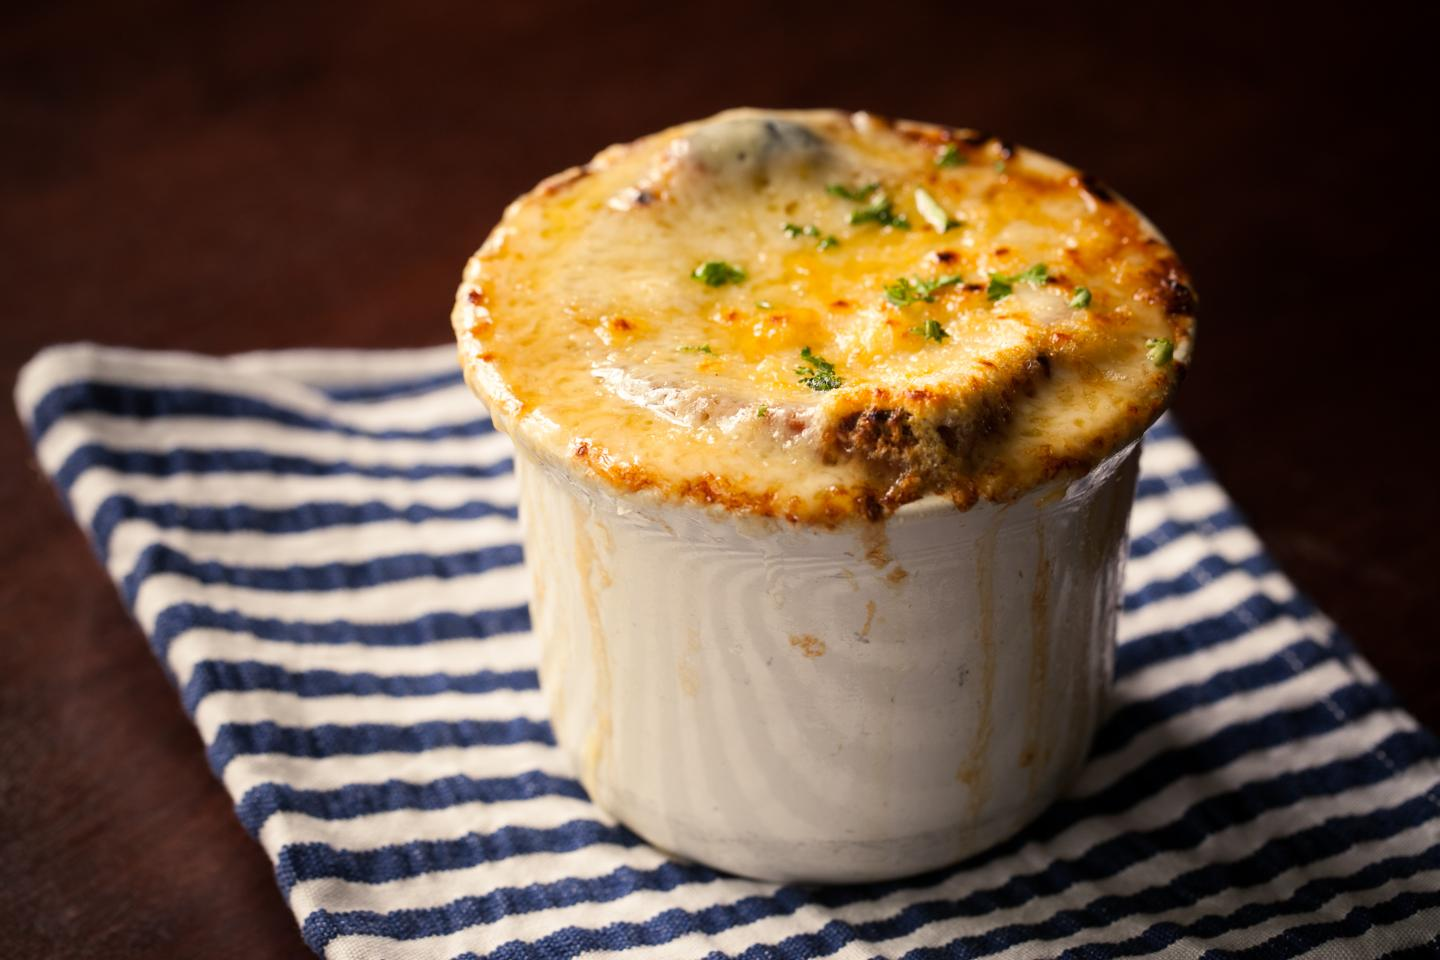 Wildfire Gluten-Free Baked French Onion Soup